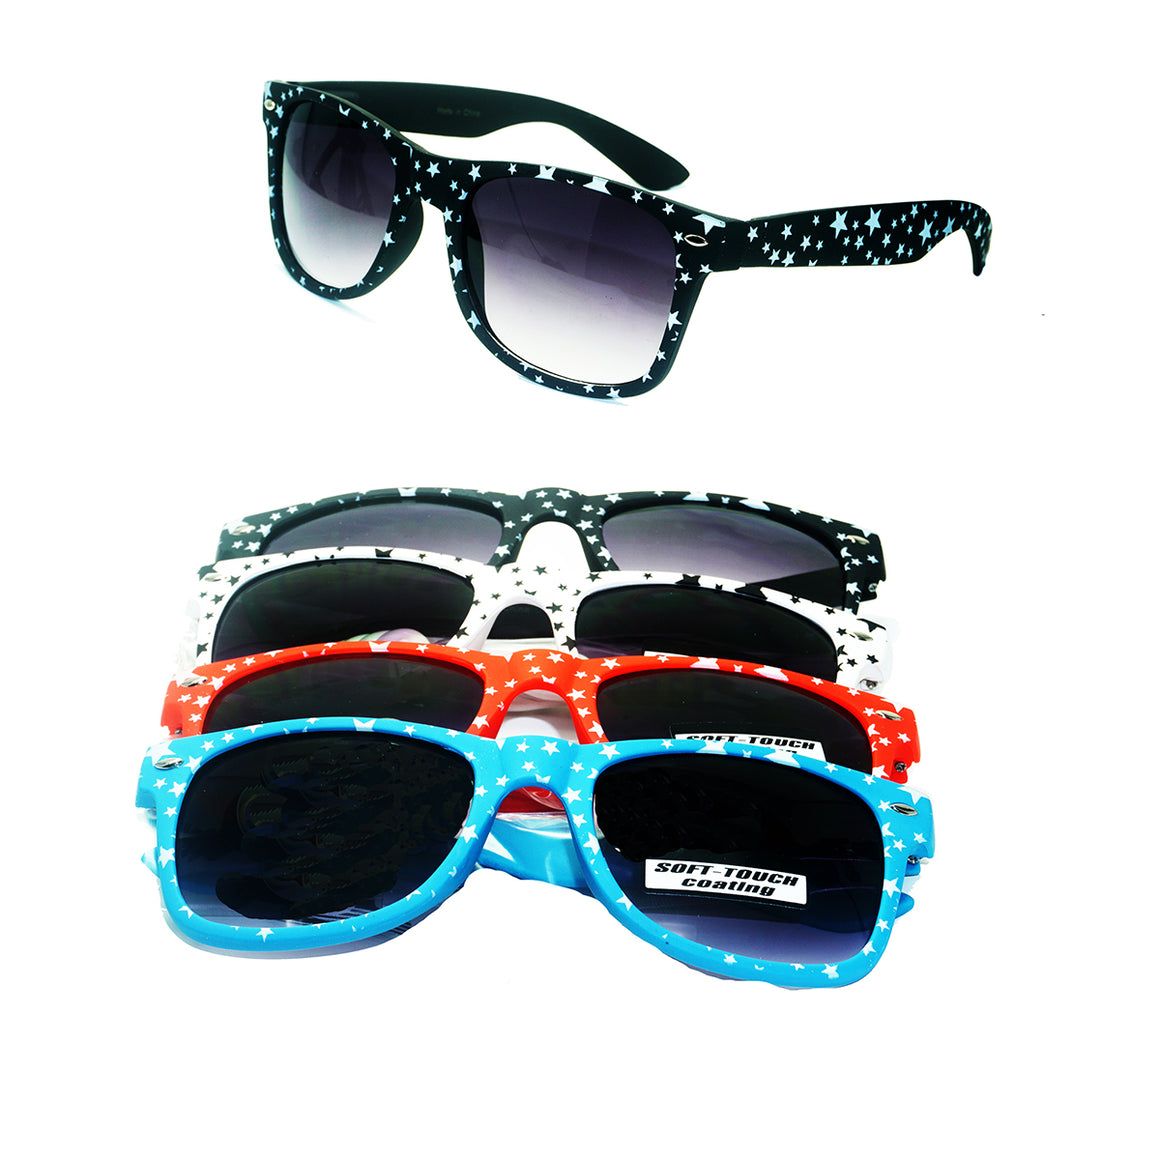 Classic Sunglasses wholesale -W-439-SFT - wholesalesunglasses.net